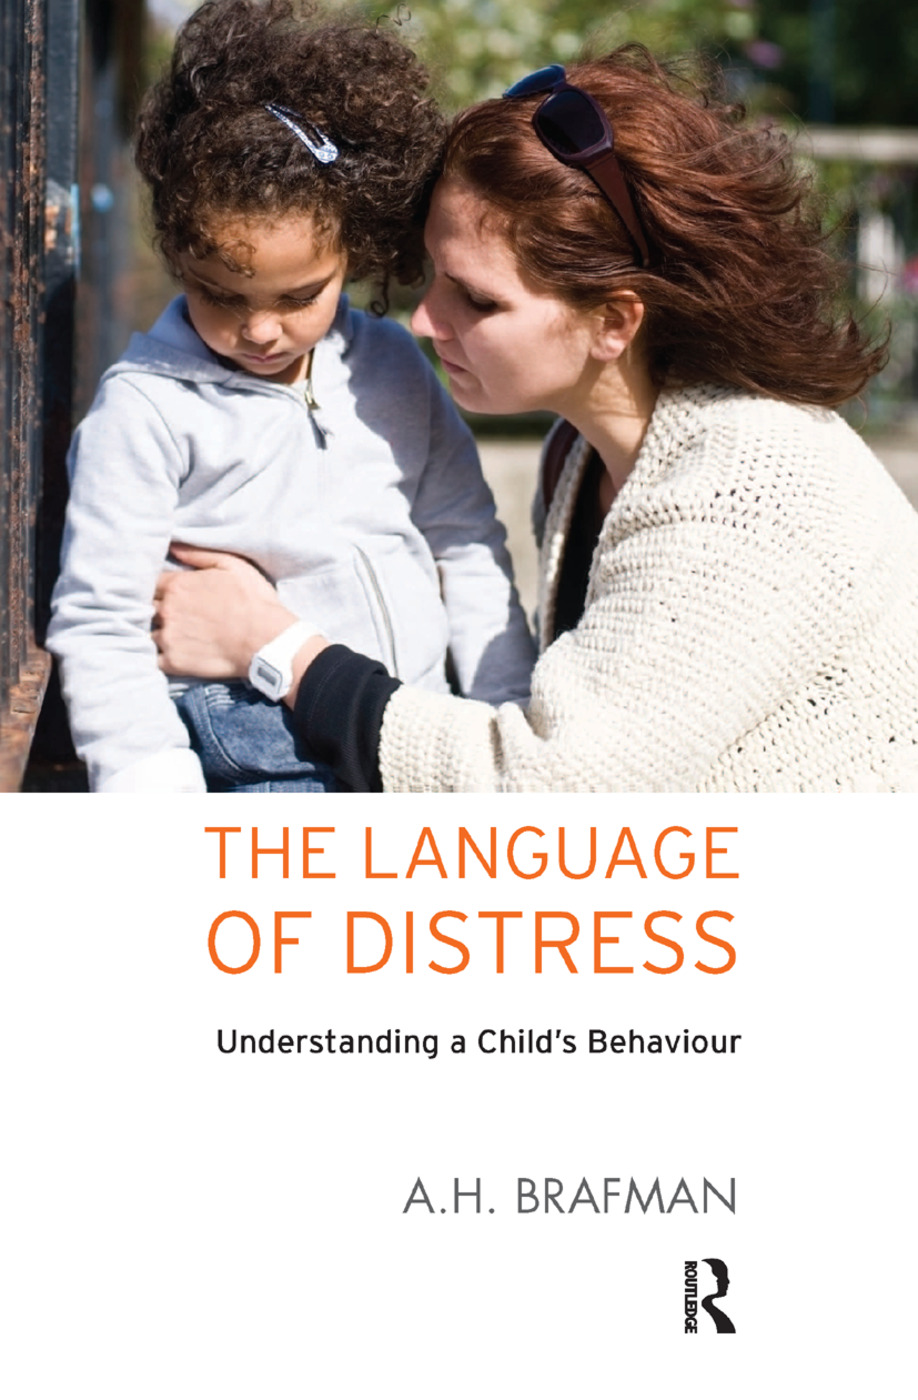 The Language of Distress: Understanding a Child's Behaviour book cover